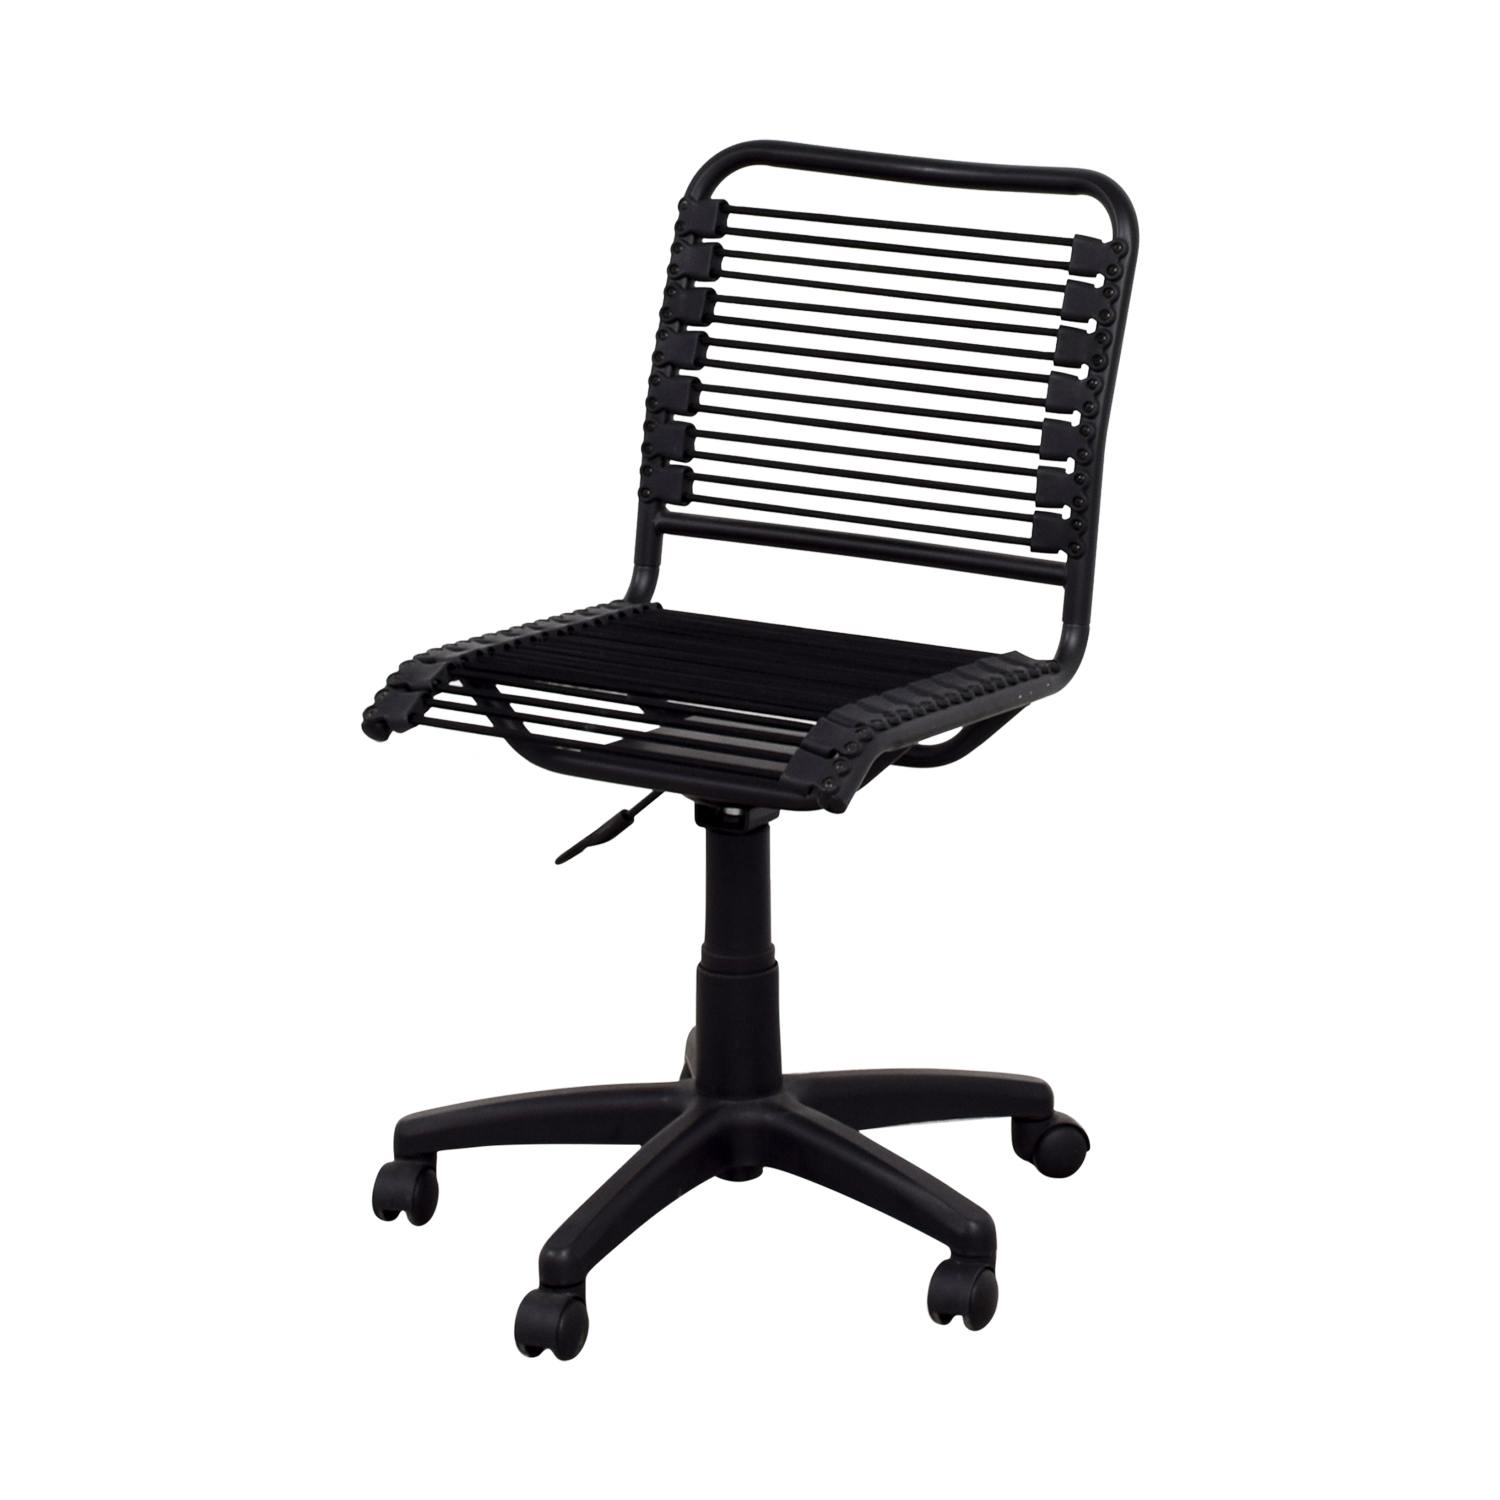 container store chair lambright comfort chairs 62 off black office